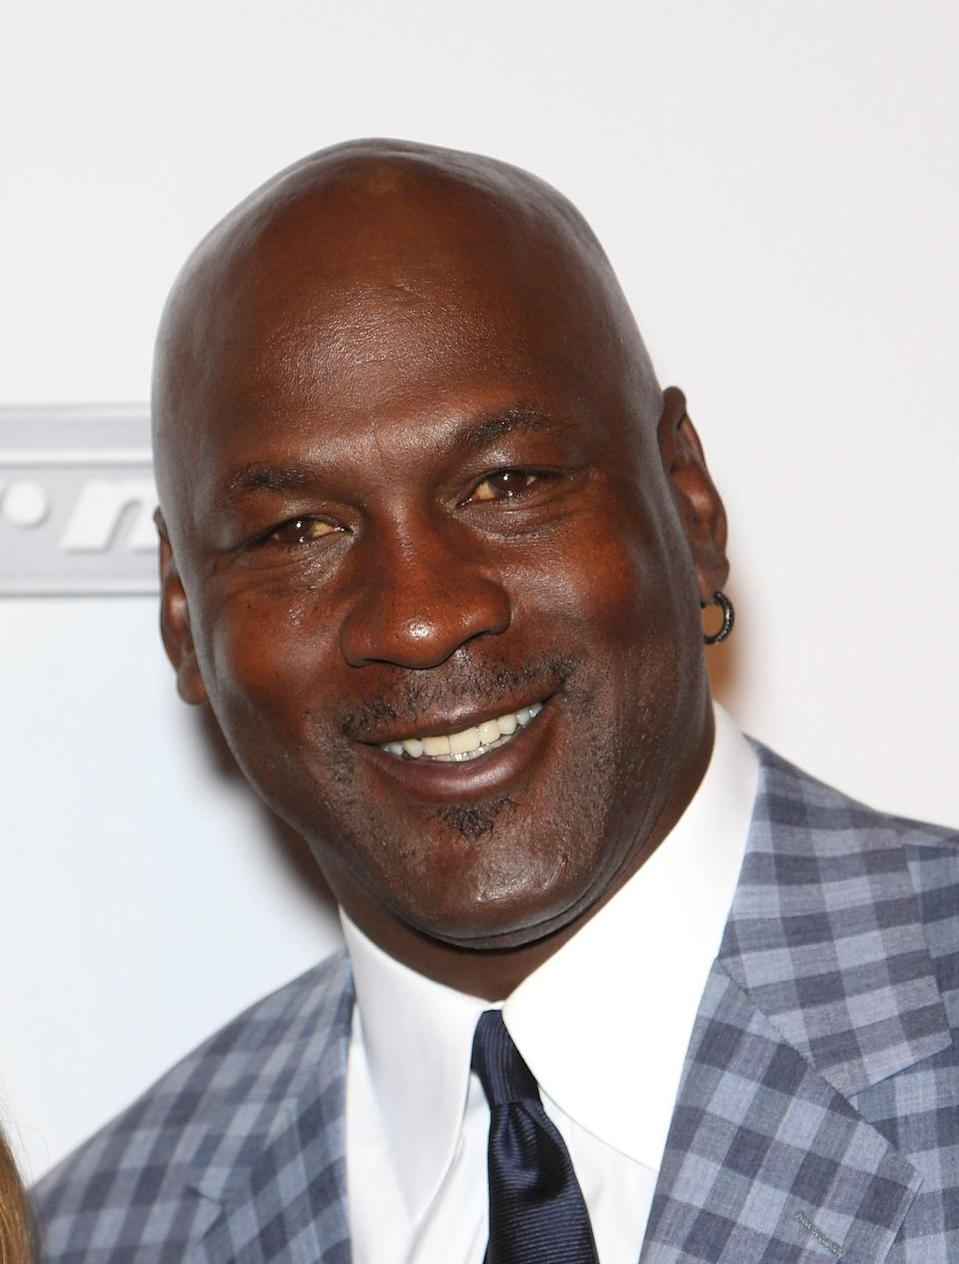 "<p>Michael Jordan has been rocking a single gold hoop earring since the '90s. Although Jordan may have <a href=""https://www.espn.co.uk/nba/story/_/id/29470986/michael-jordan-changed-fashion-game-one-beret-gold-hoop"" rel=""nofollow noopener"" target=""_blank"" data-ylk=""slk:ditched the baggy suits"" class=""link rapid-noclick-resp"">ditched the baggy suits</a> that he originally paired with his ear accessory, this piece of jewelry is still dangling from the retired NBA player's lobe. </p>"